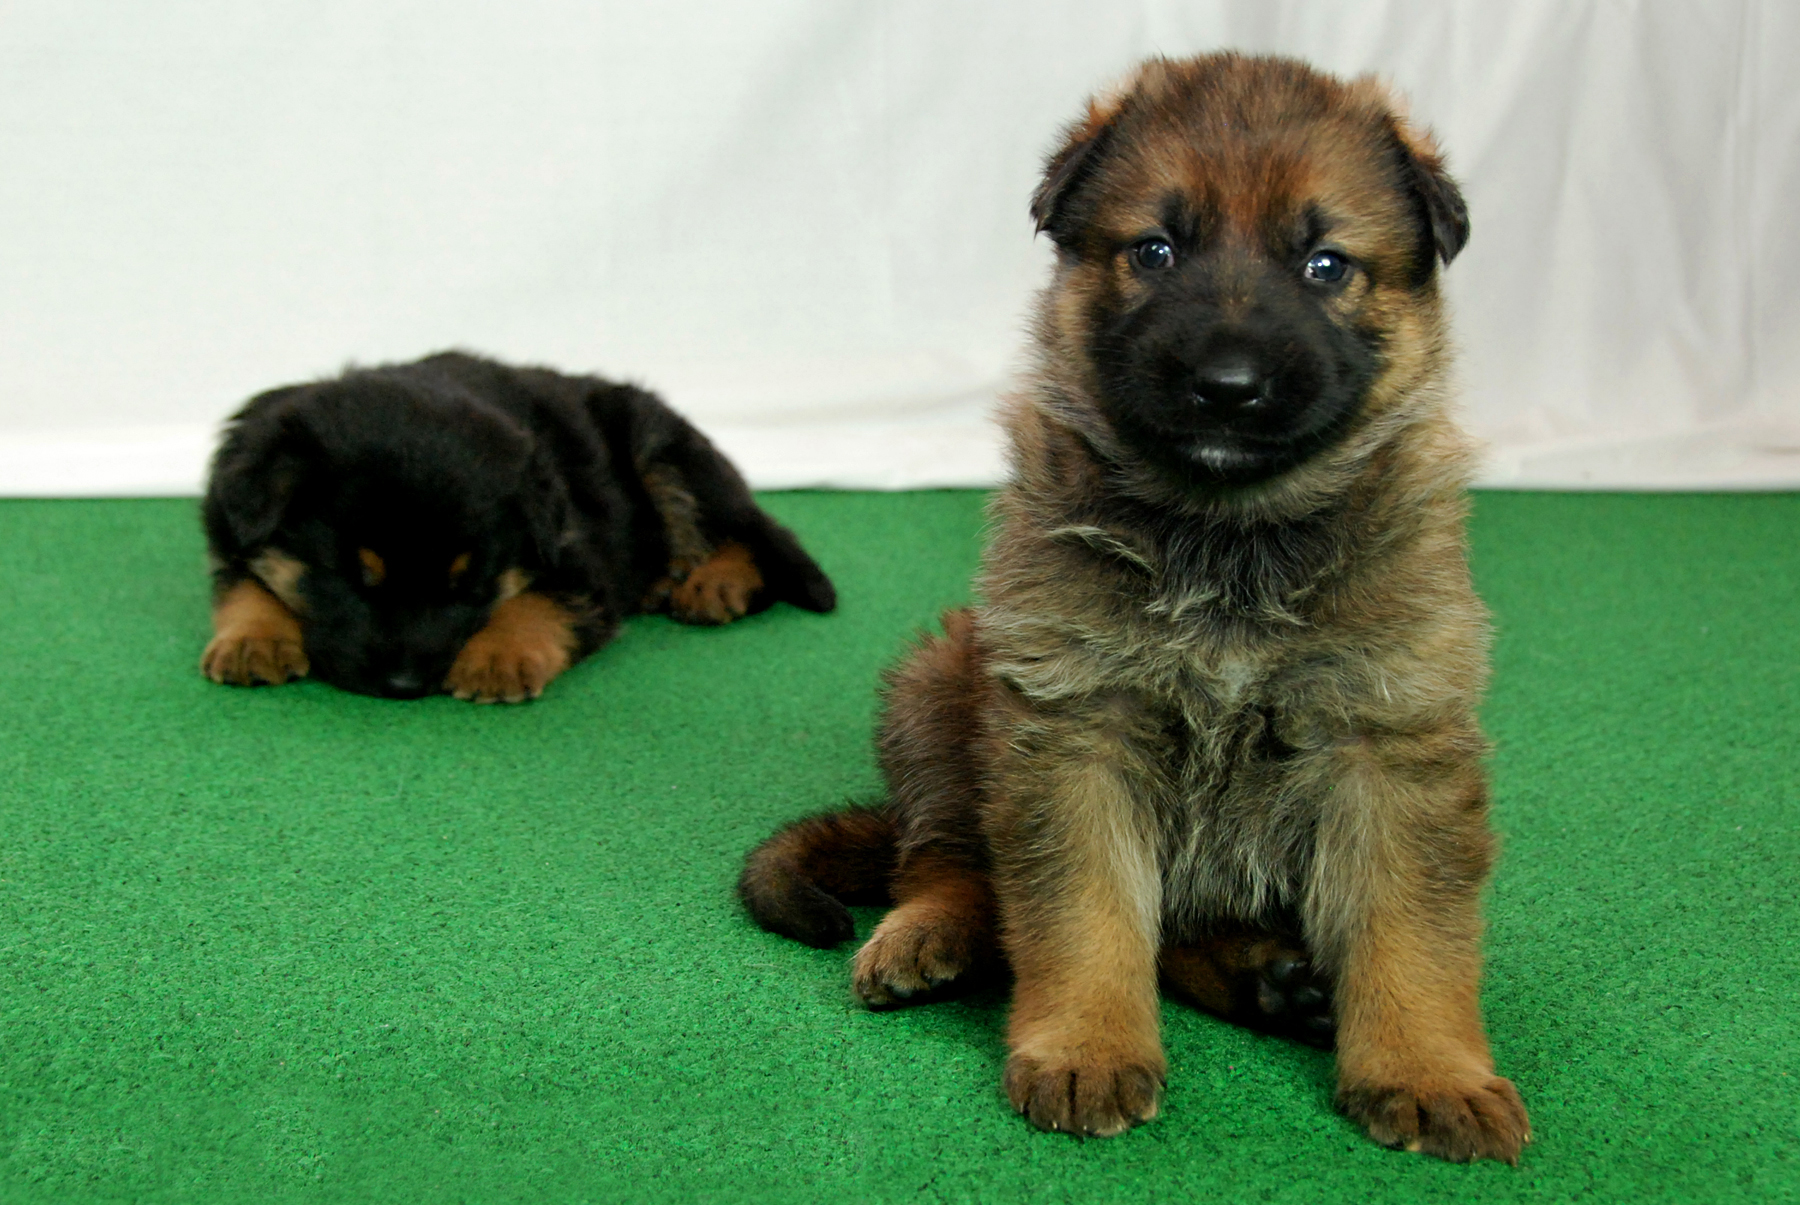 23-day old German Shepherd puppies